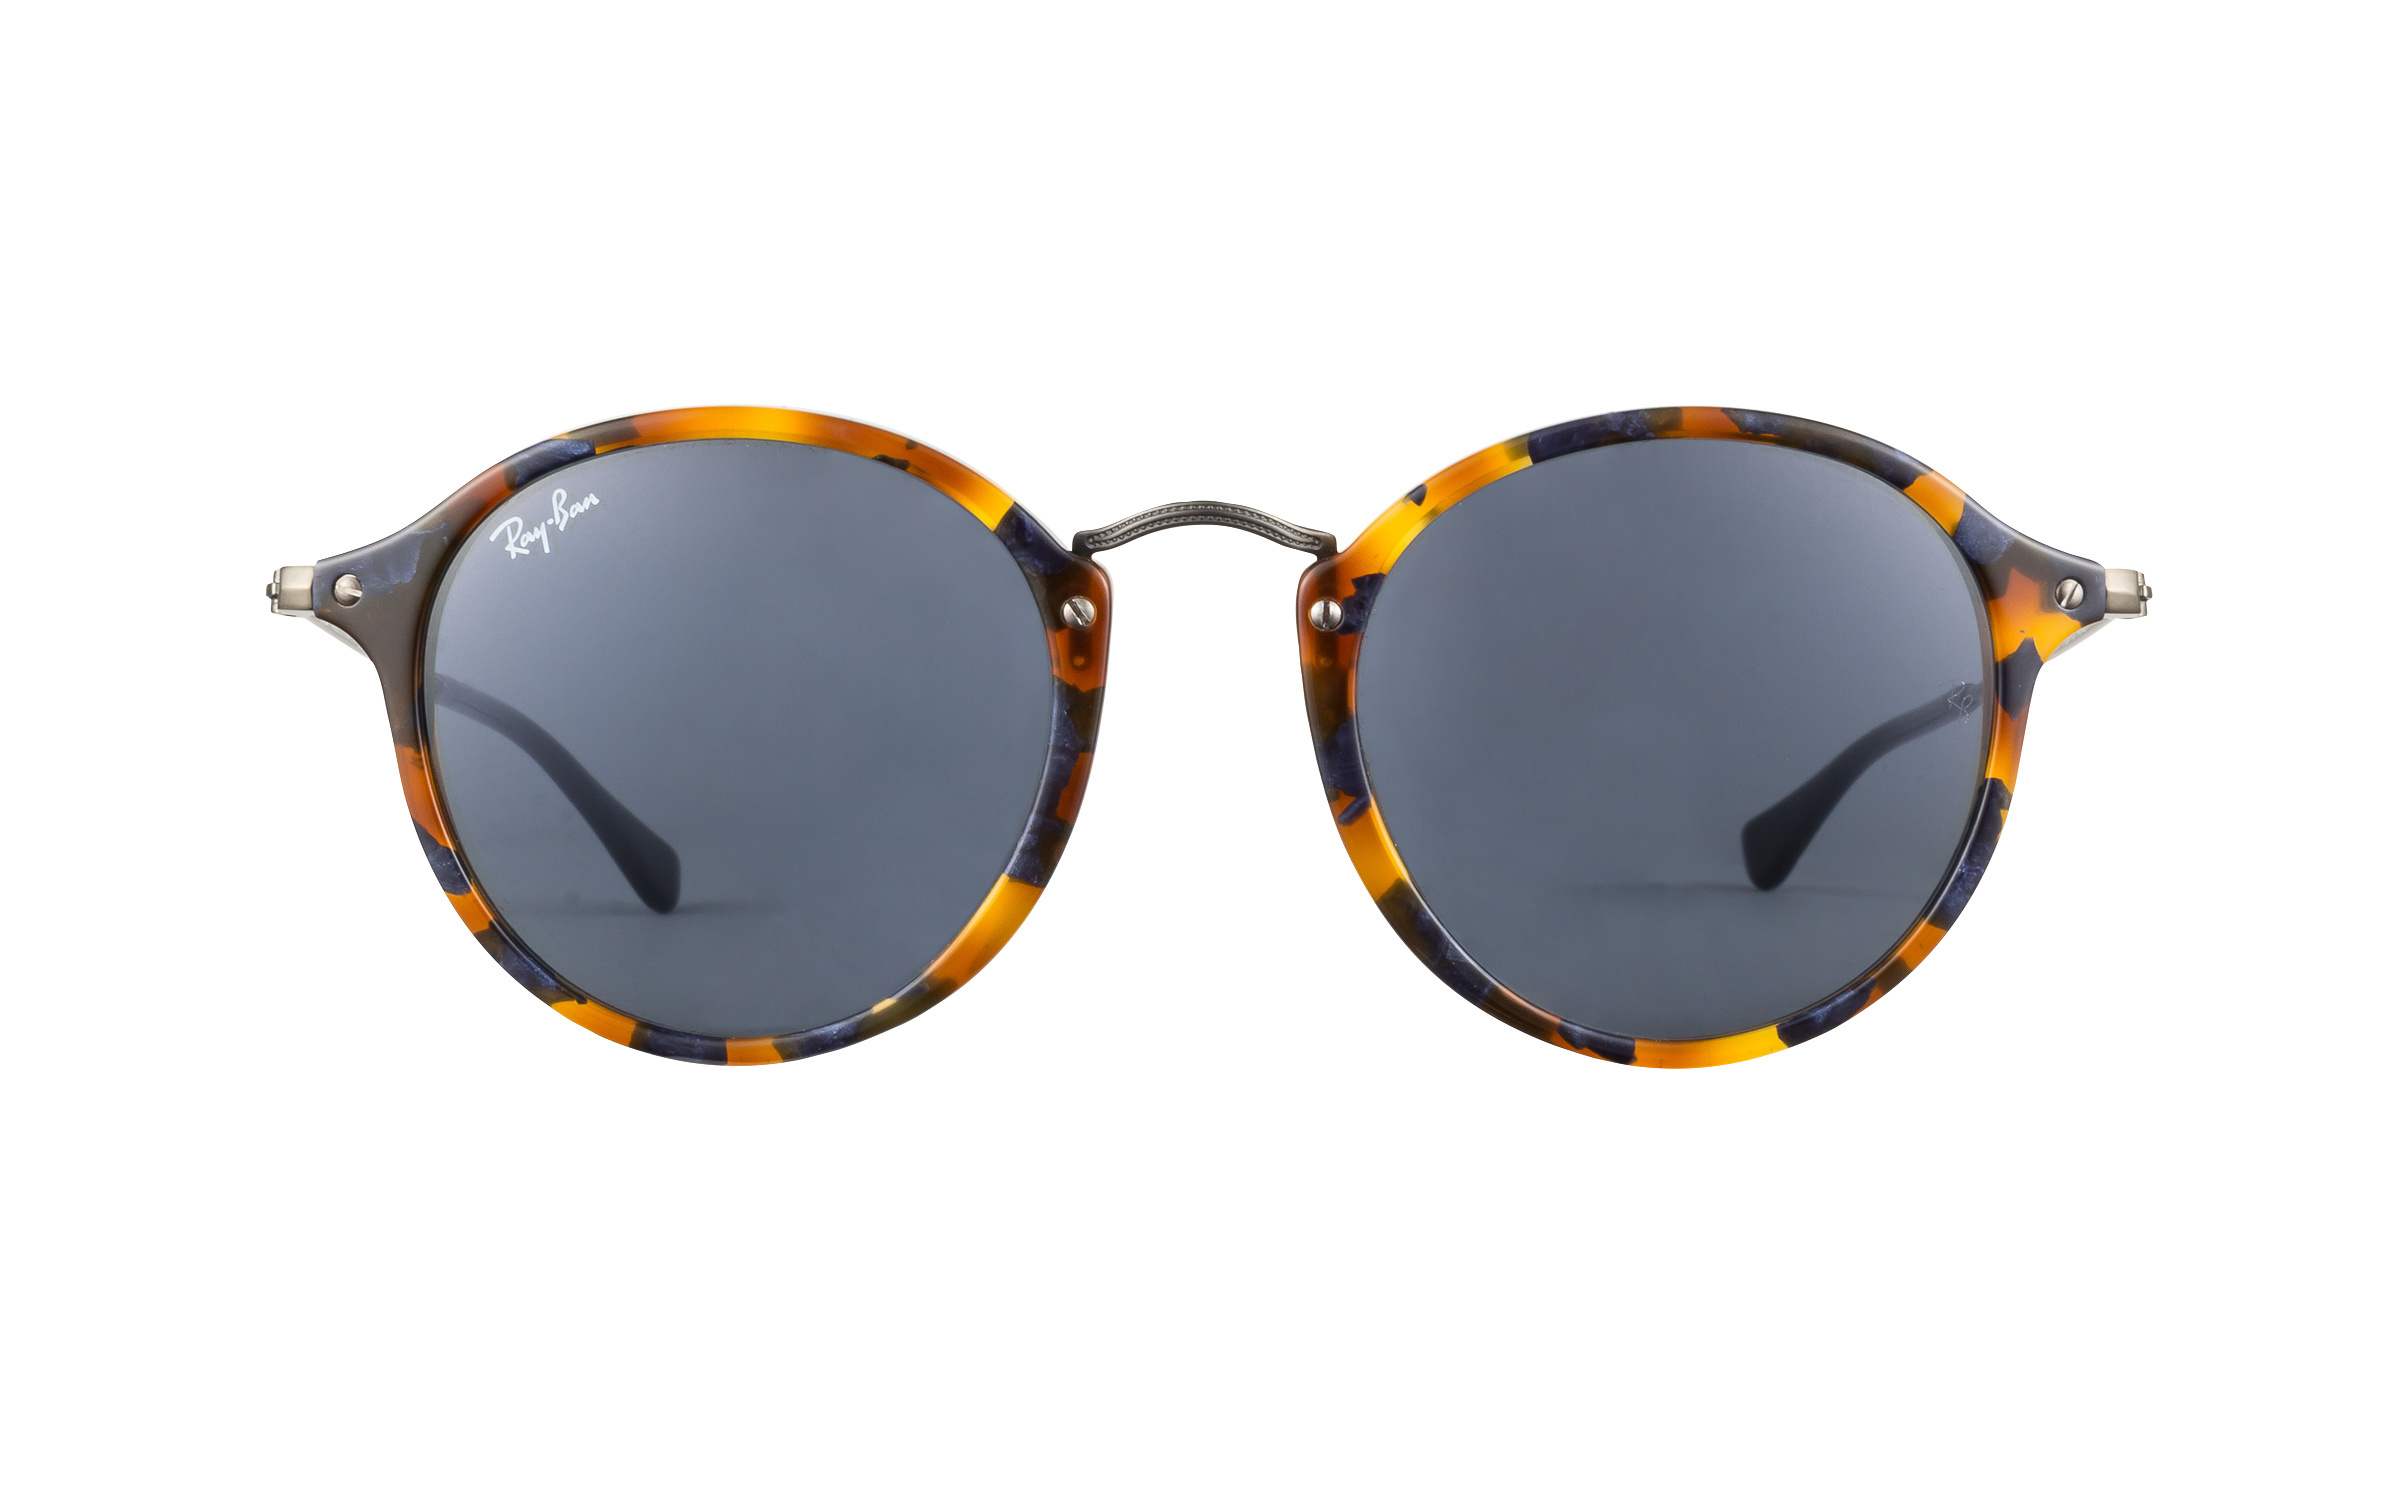 rayben  Shop for Ray-Ban sunglasses online with friendly service and a ...